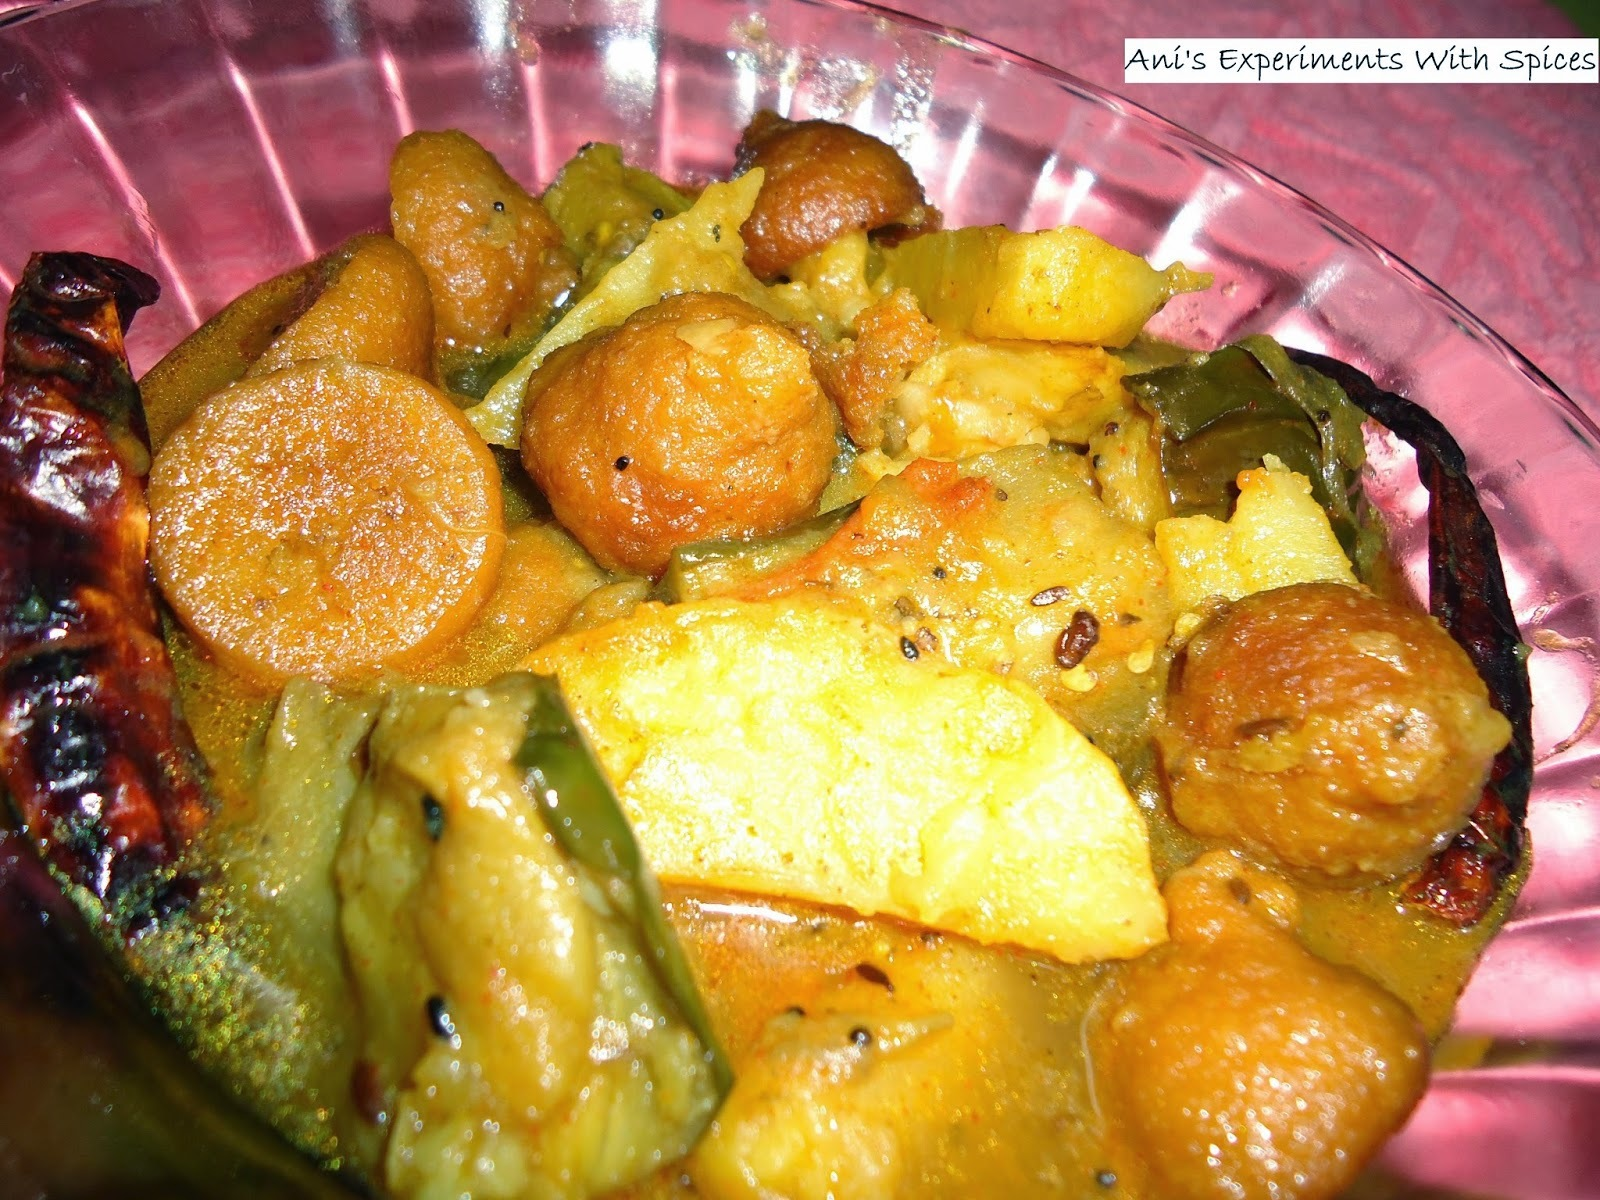 Aloo Begun Masoor Daaler Bori Diye Torkari ( Dried Lentil Dumplings in Potato And Brinjal/Eggplant Curry)